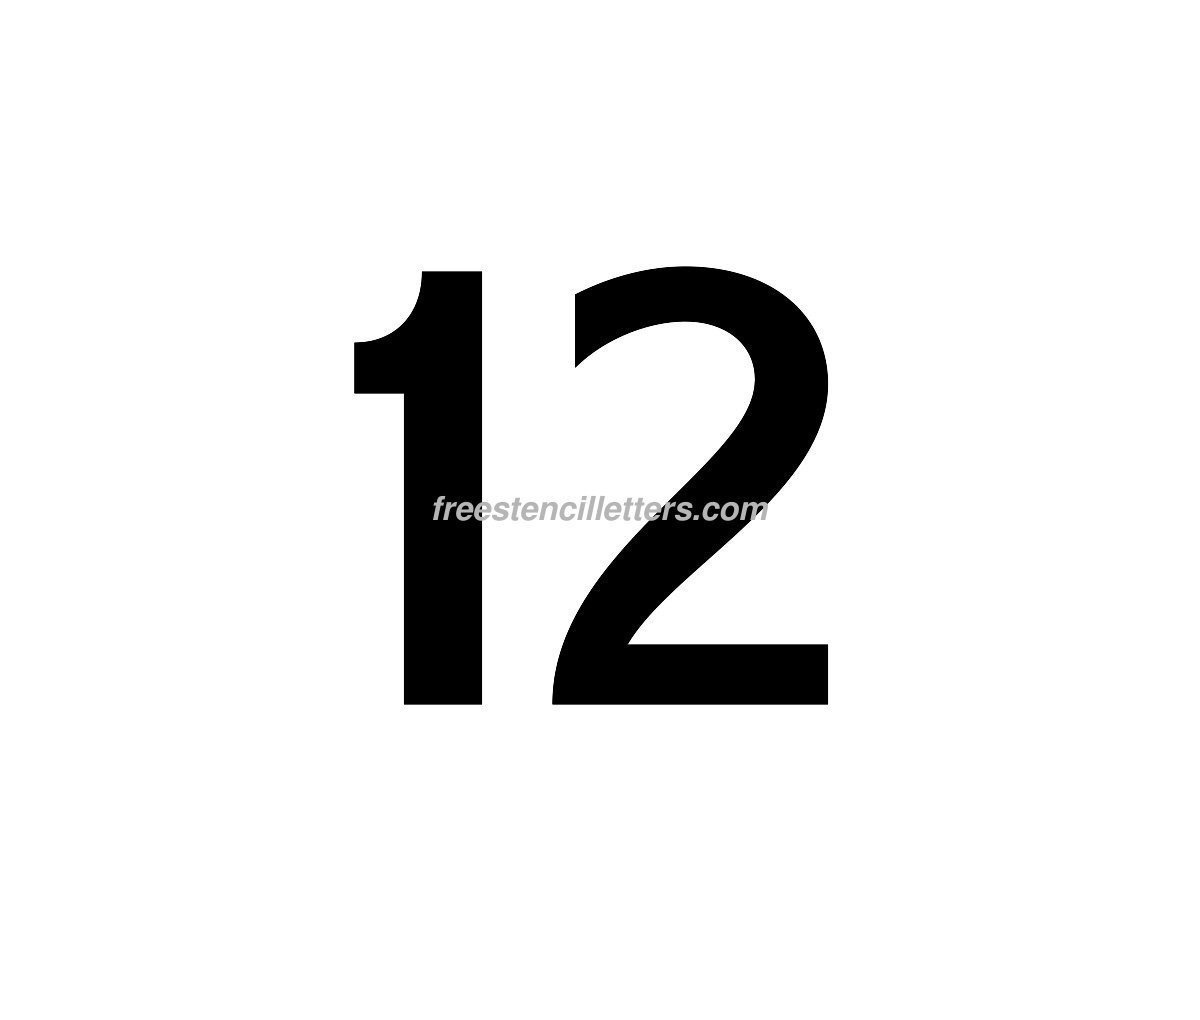 Download print number 12 letter stencil to print and cut out